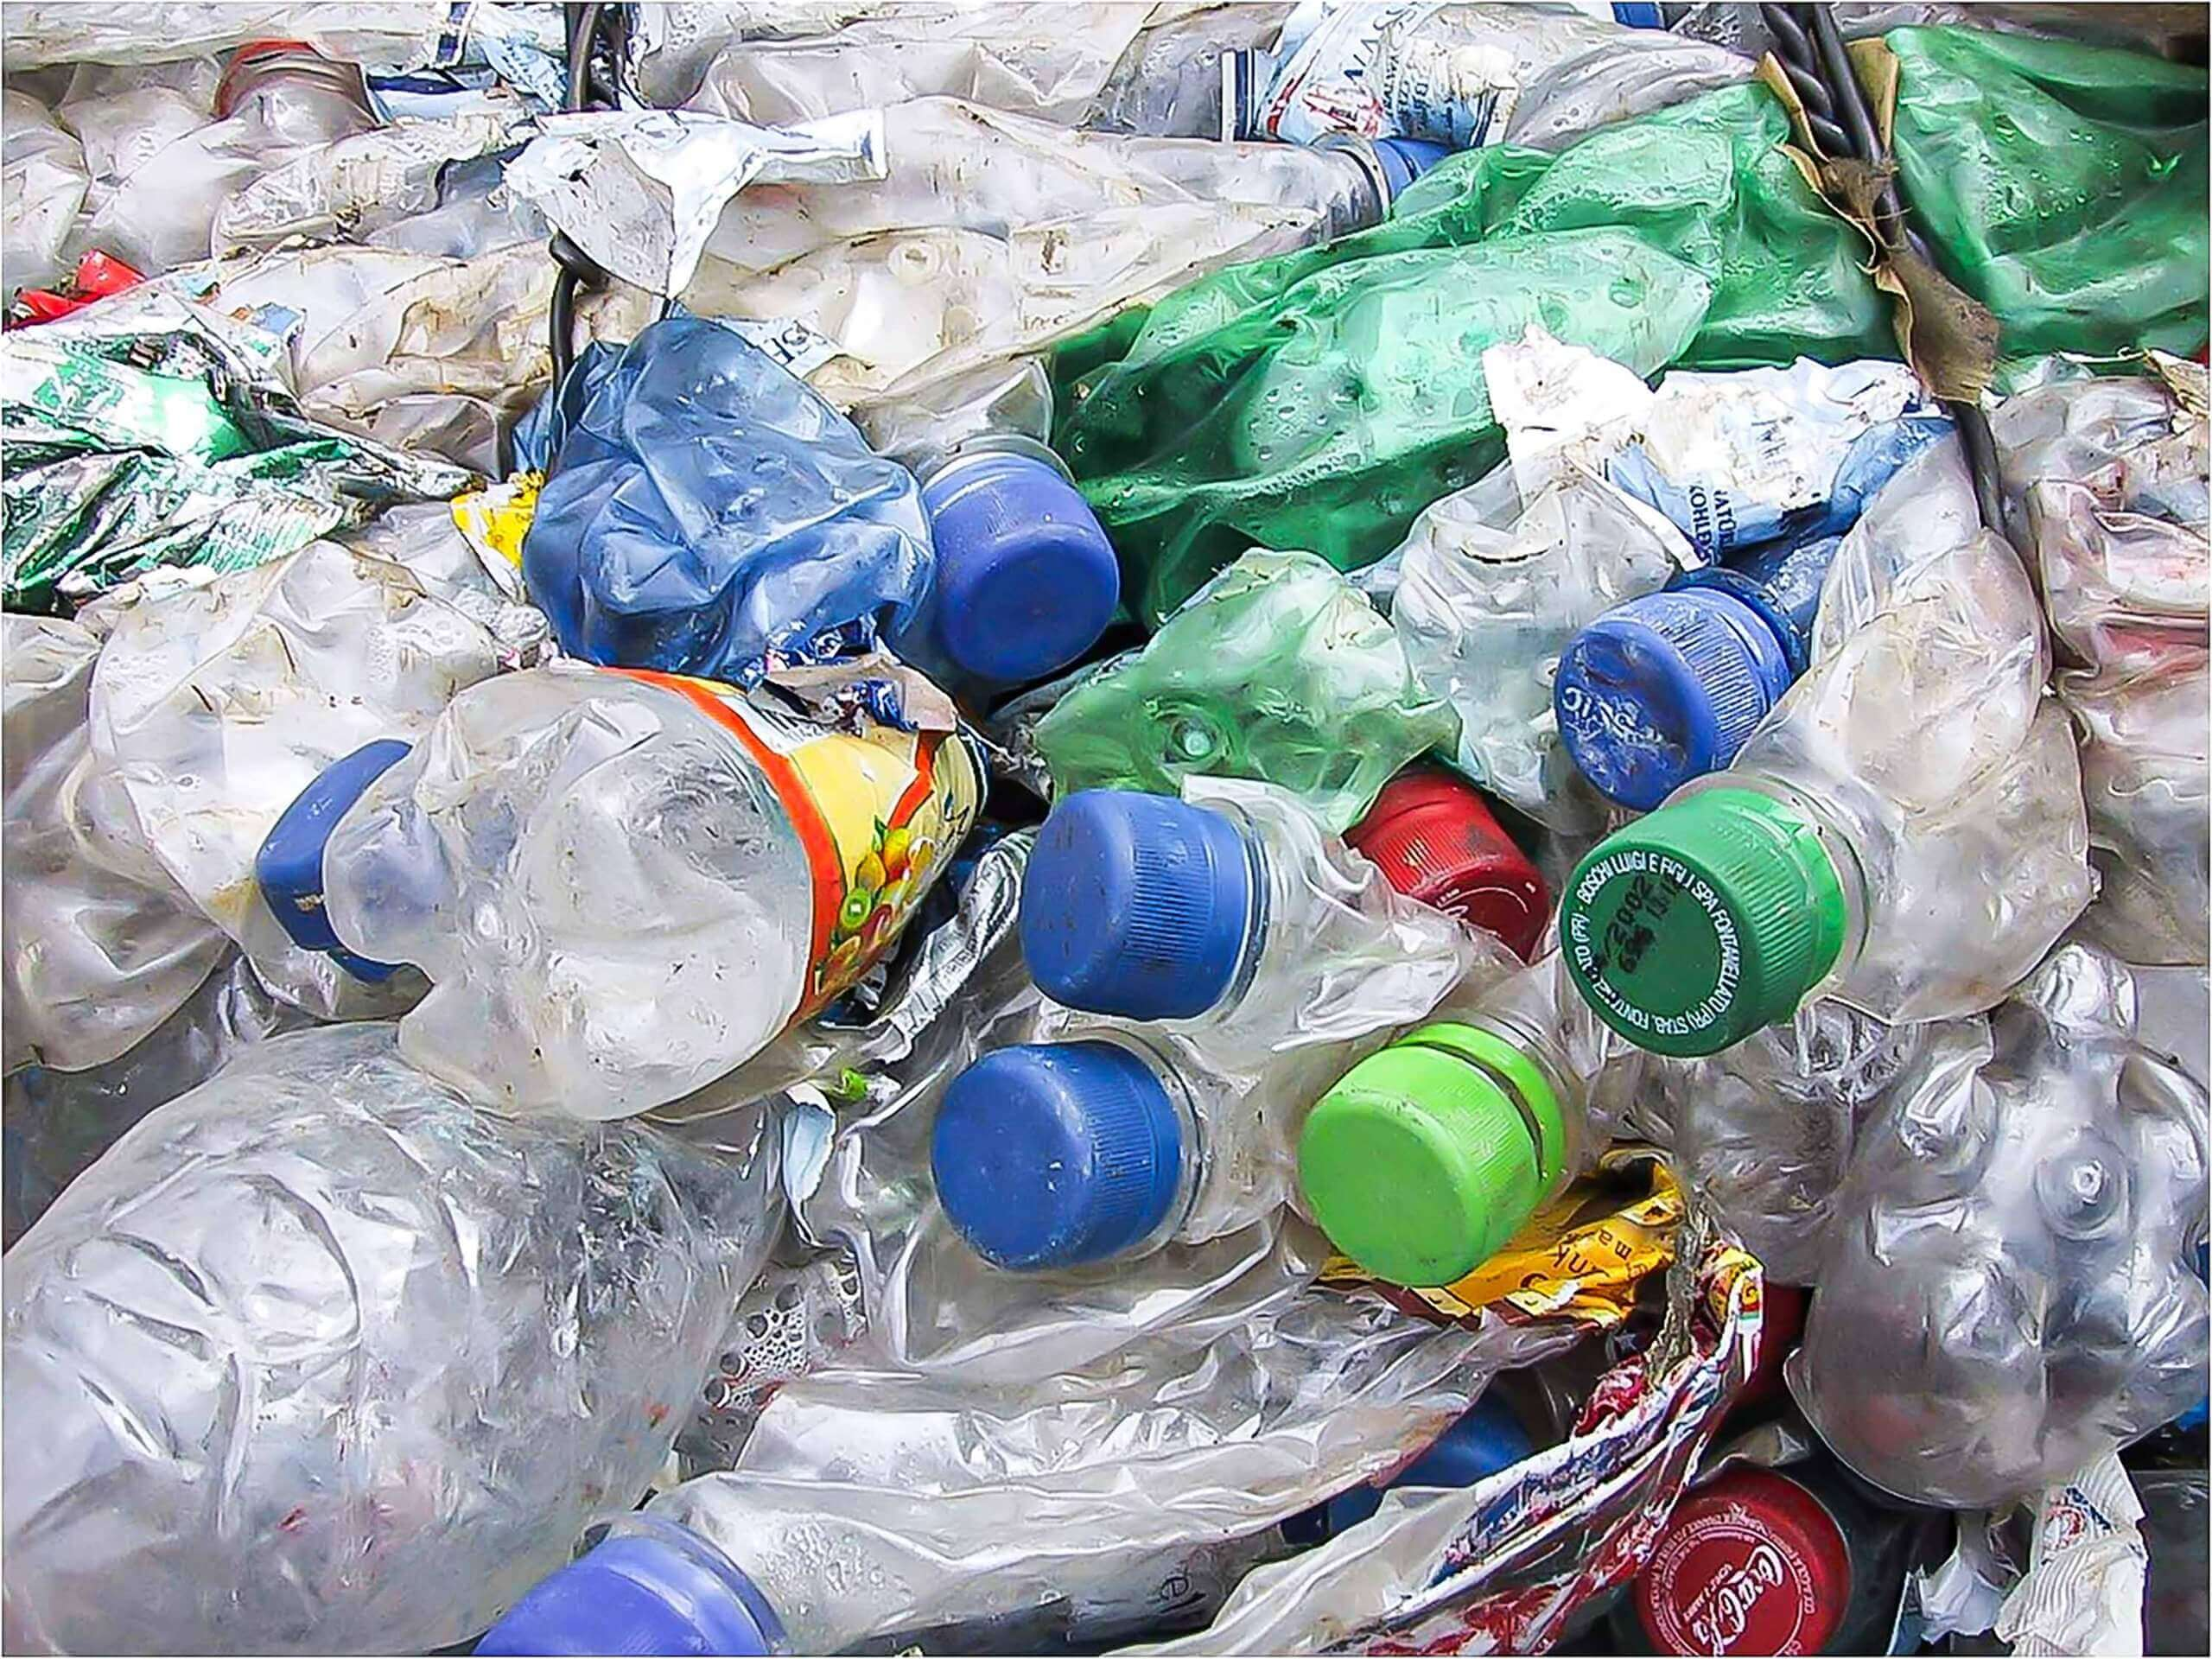 PET bottles are shredded in the recycling process with WEIMA shredders